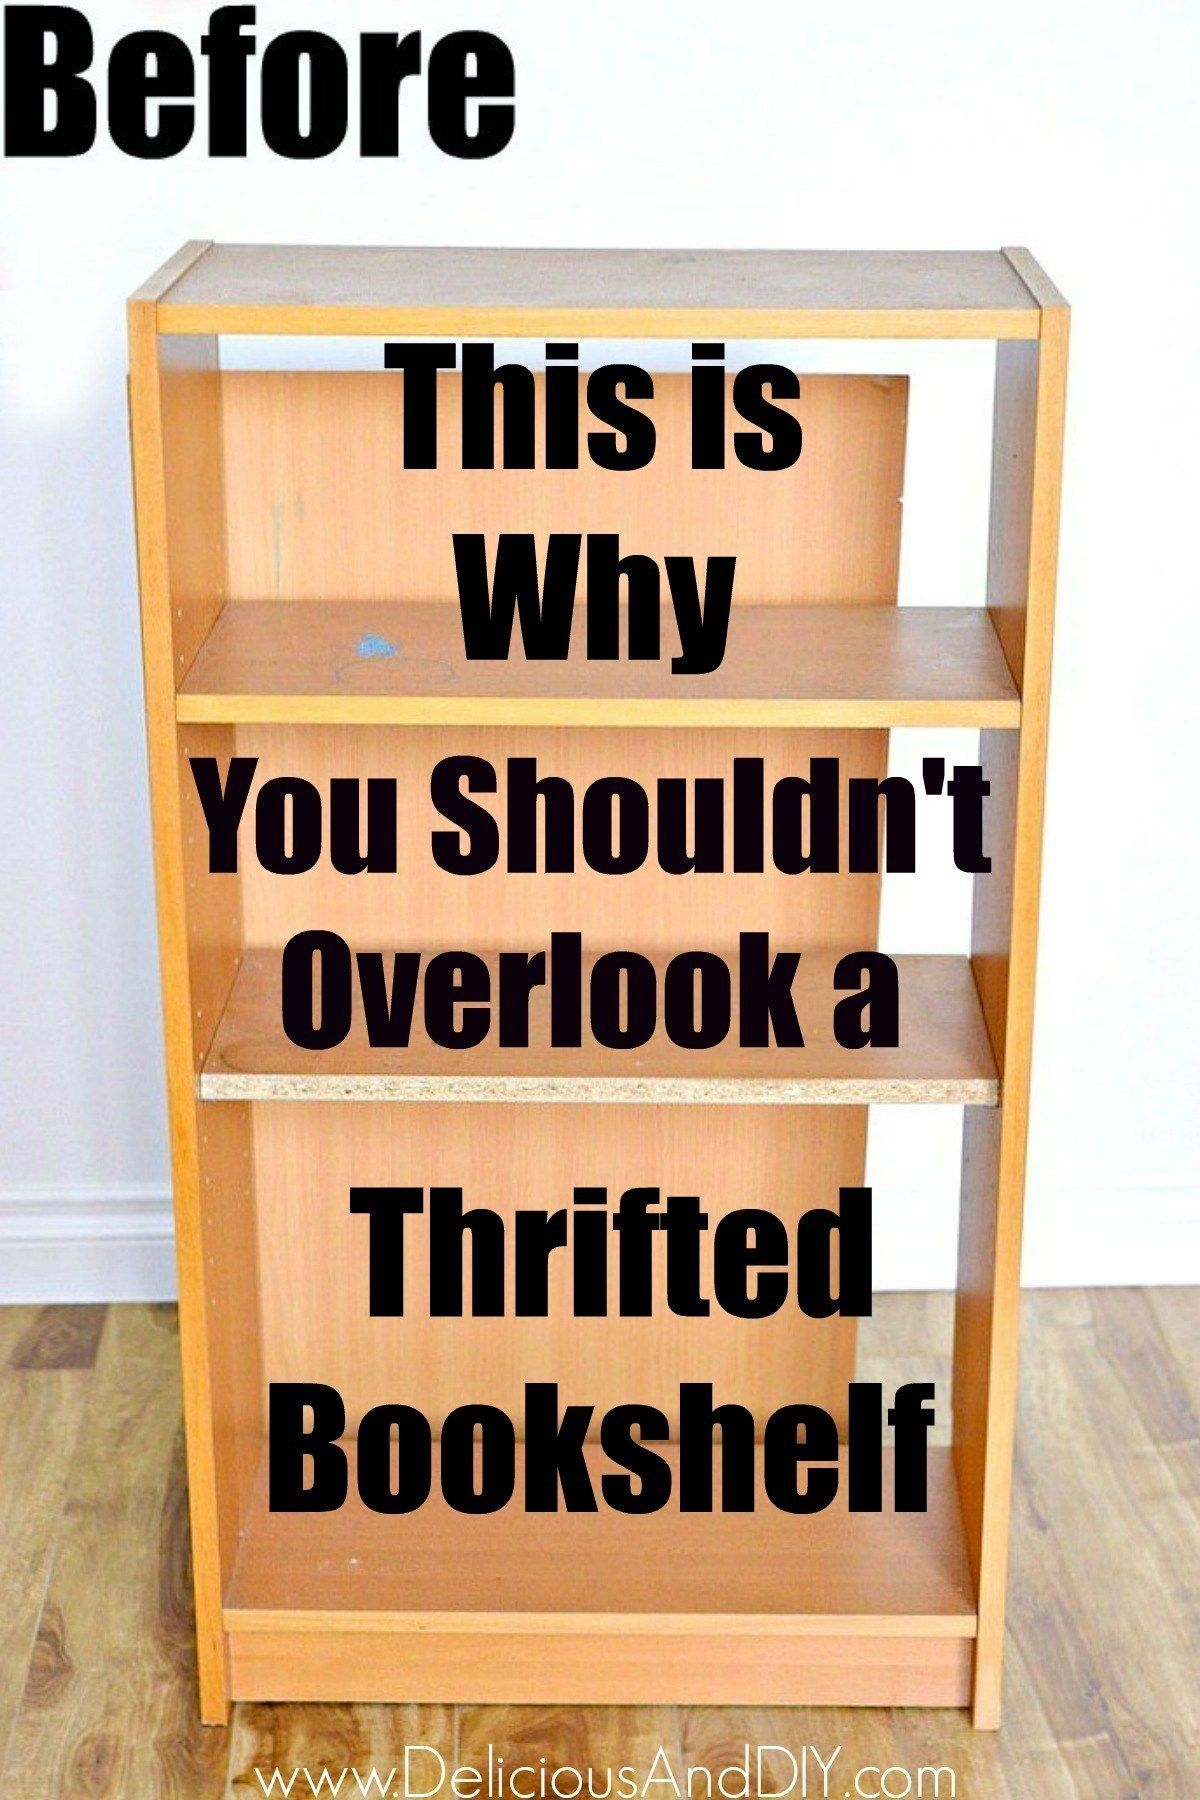 Upcycle A Bookshelf With Peel And Stick Wallpaper Delicious And Diy Bookshelves Diy Bookshelf Makeover Diy Furniture Hacks